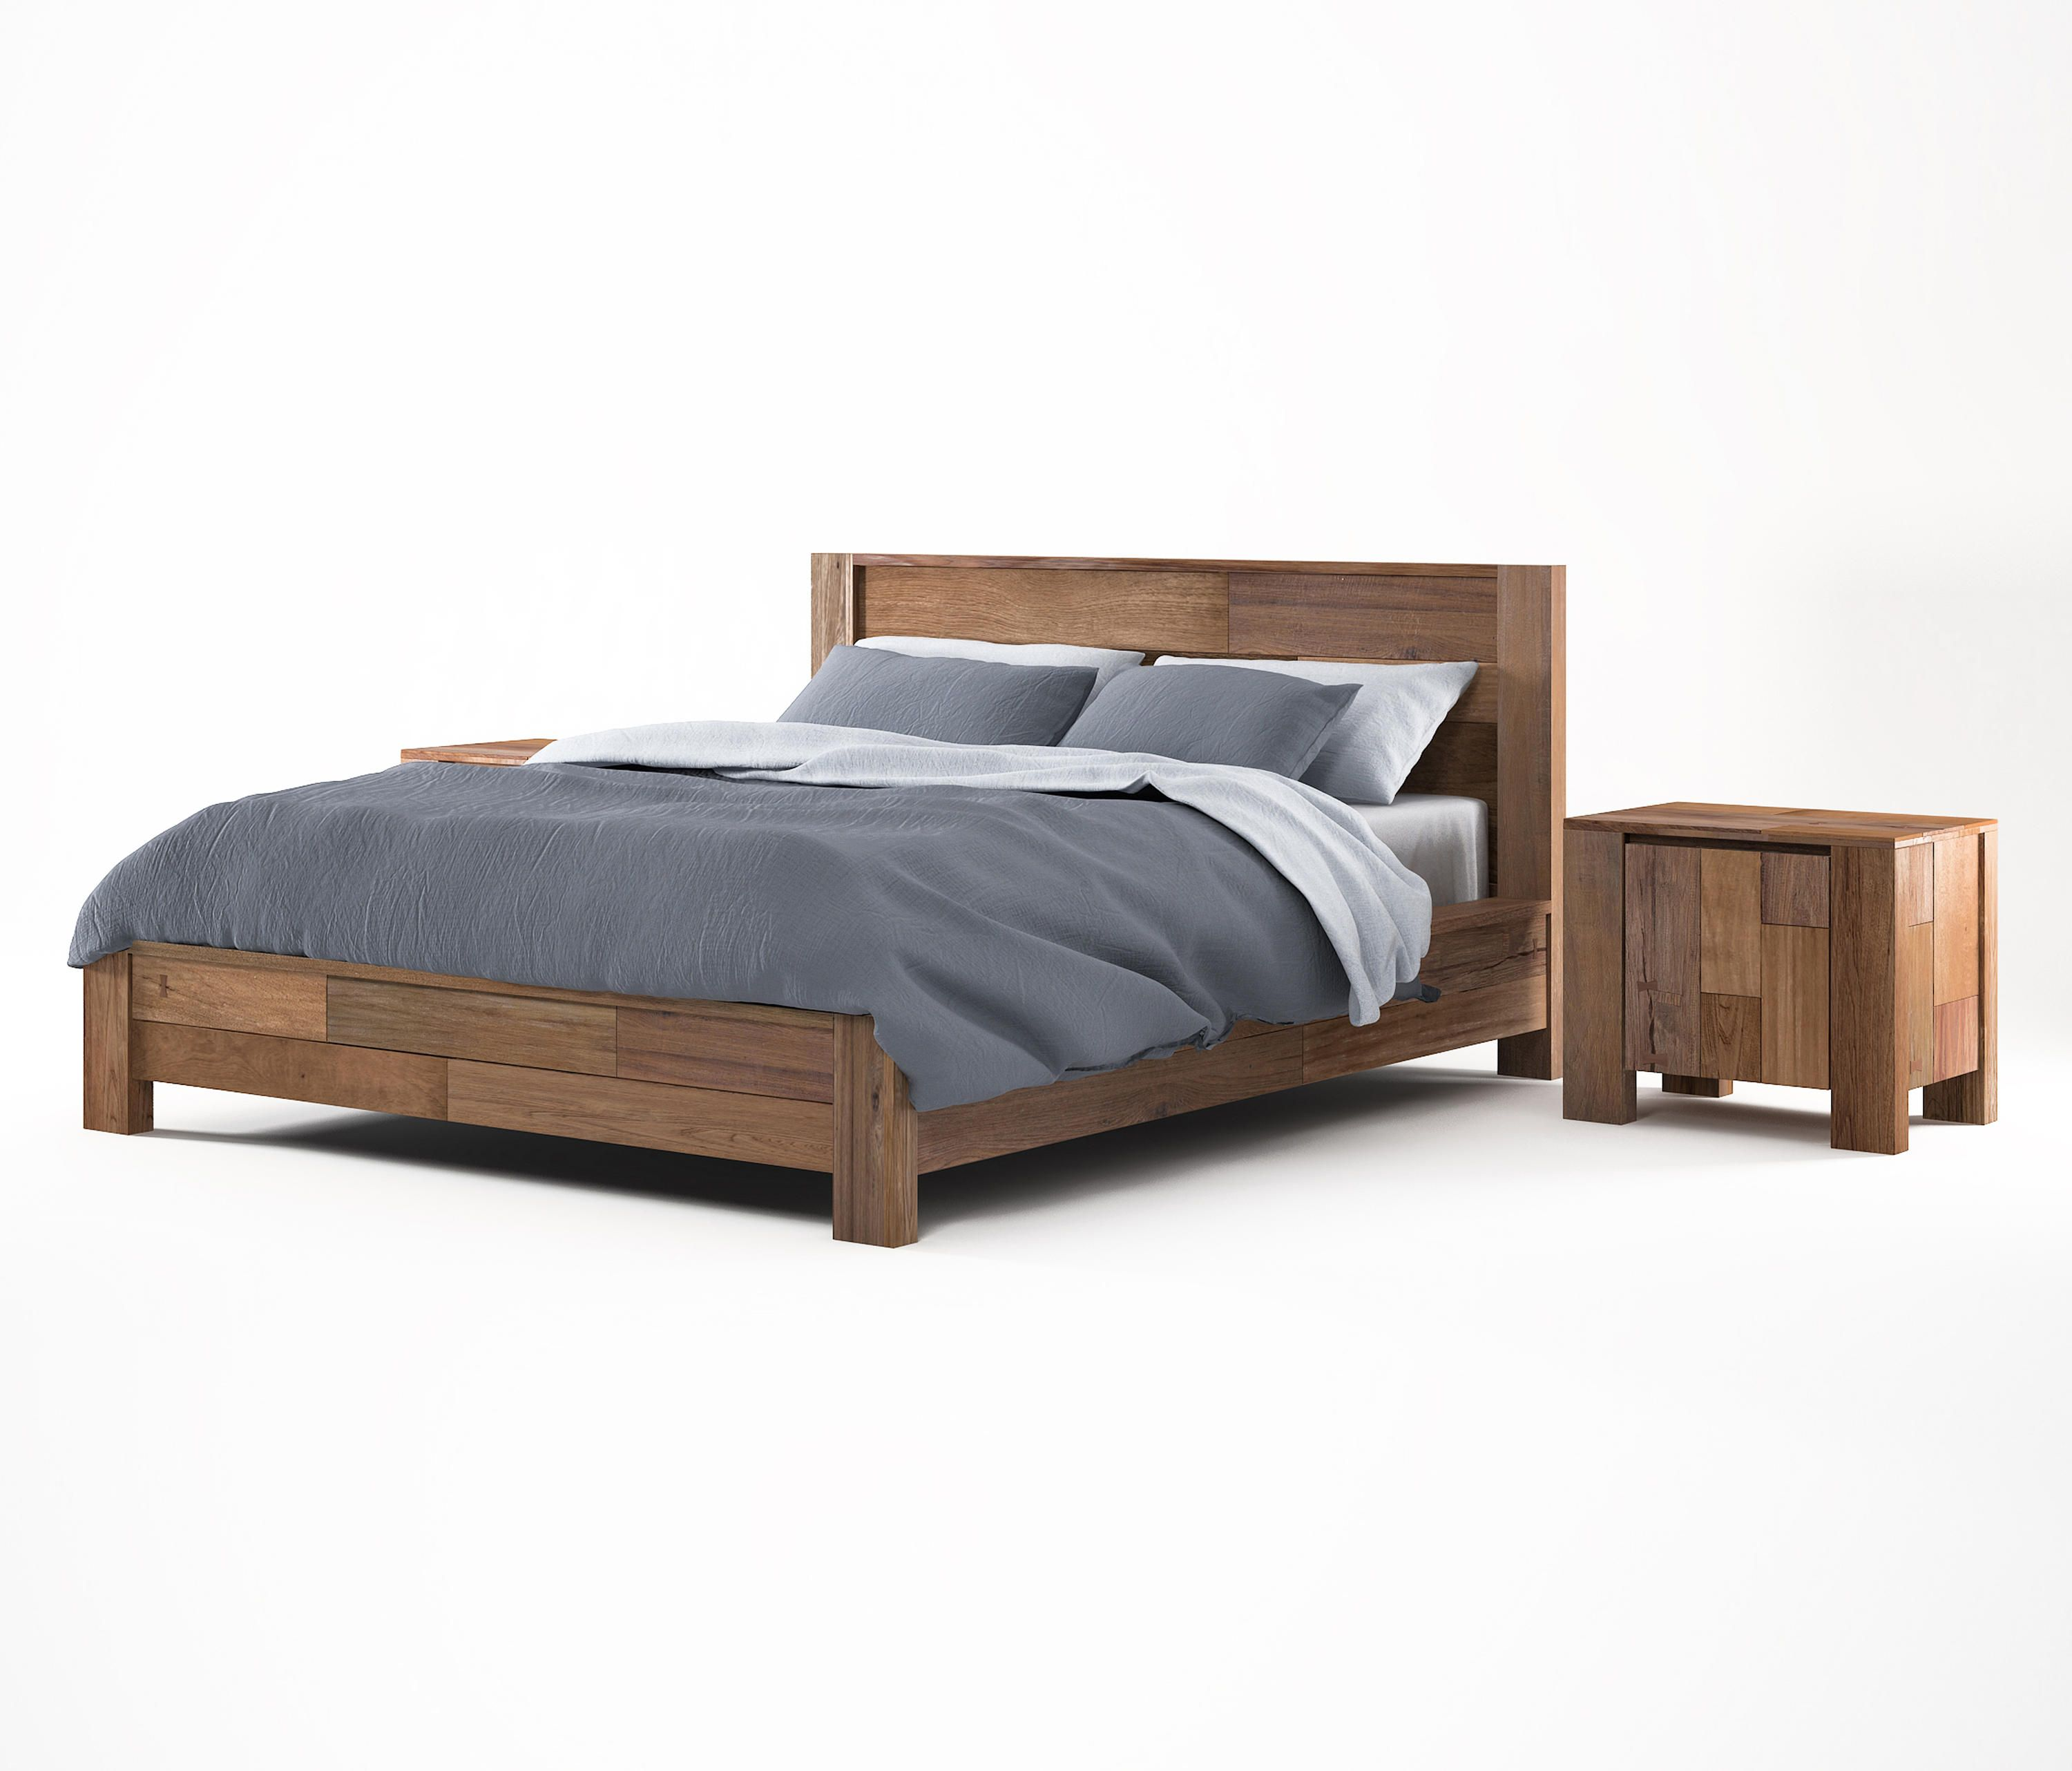 Teak Wood Shandur King Size Bed King Size Bedroom Furniture